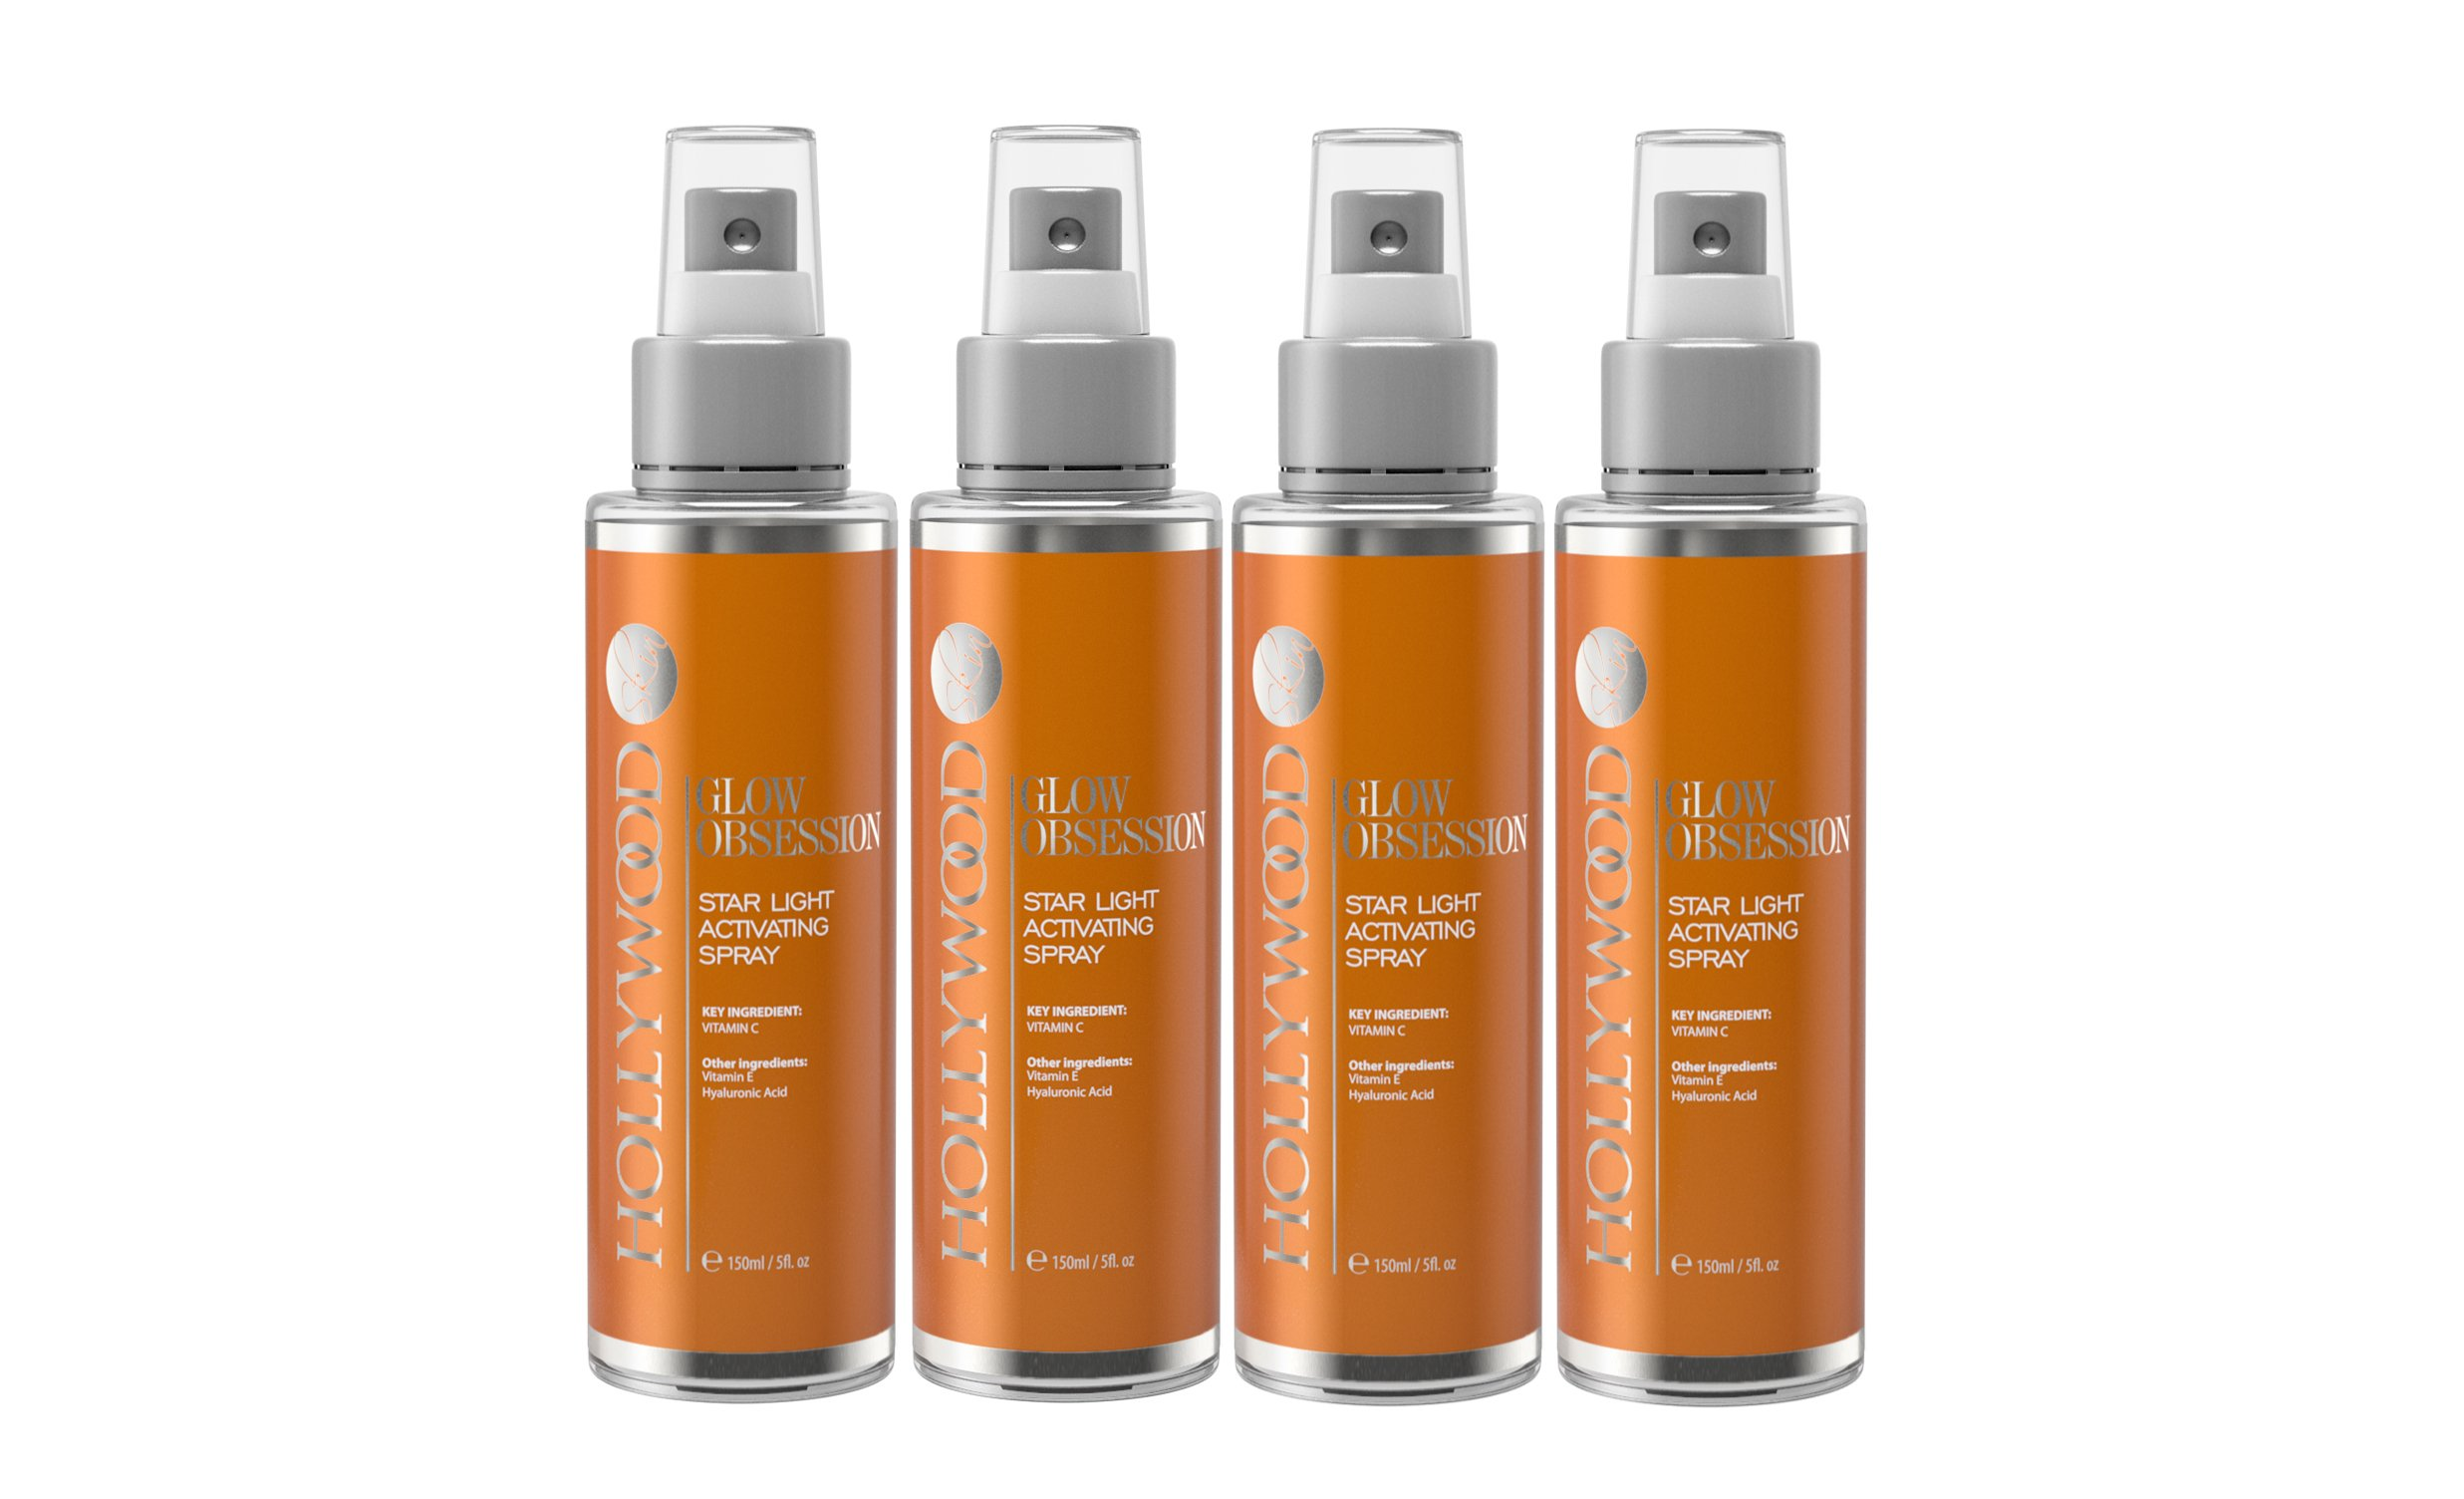 GLOW OBSESSION - 20% Vitamin C Facial Spray. Anti-aging and deeply moisturising. 4x STONGER than the competitors. With 10% Hyaluronic Acid, 1% Vitamin E + Witch Hazel. 150 ml (4 Bottles)